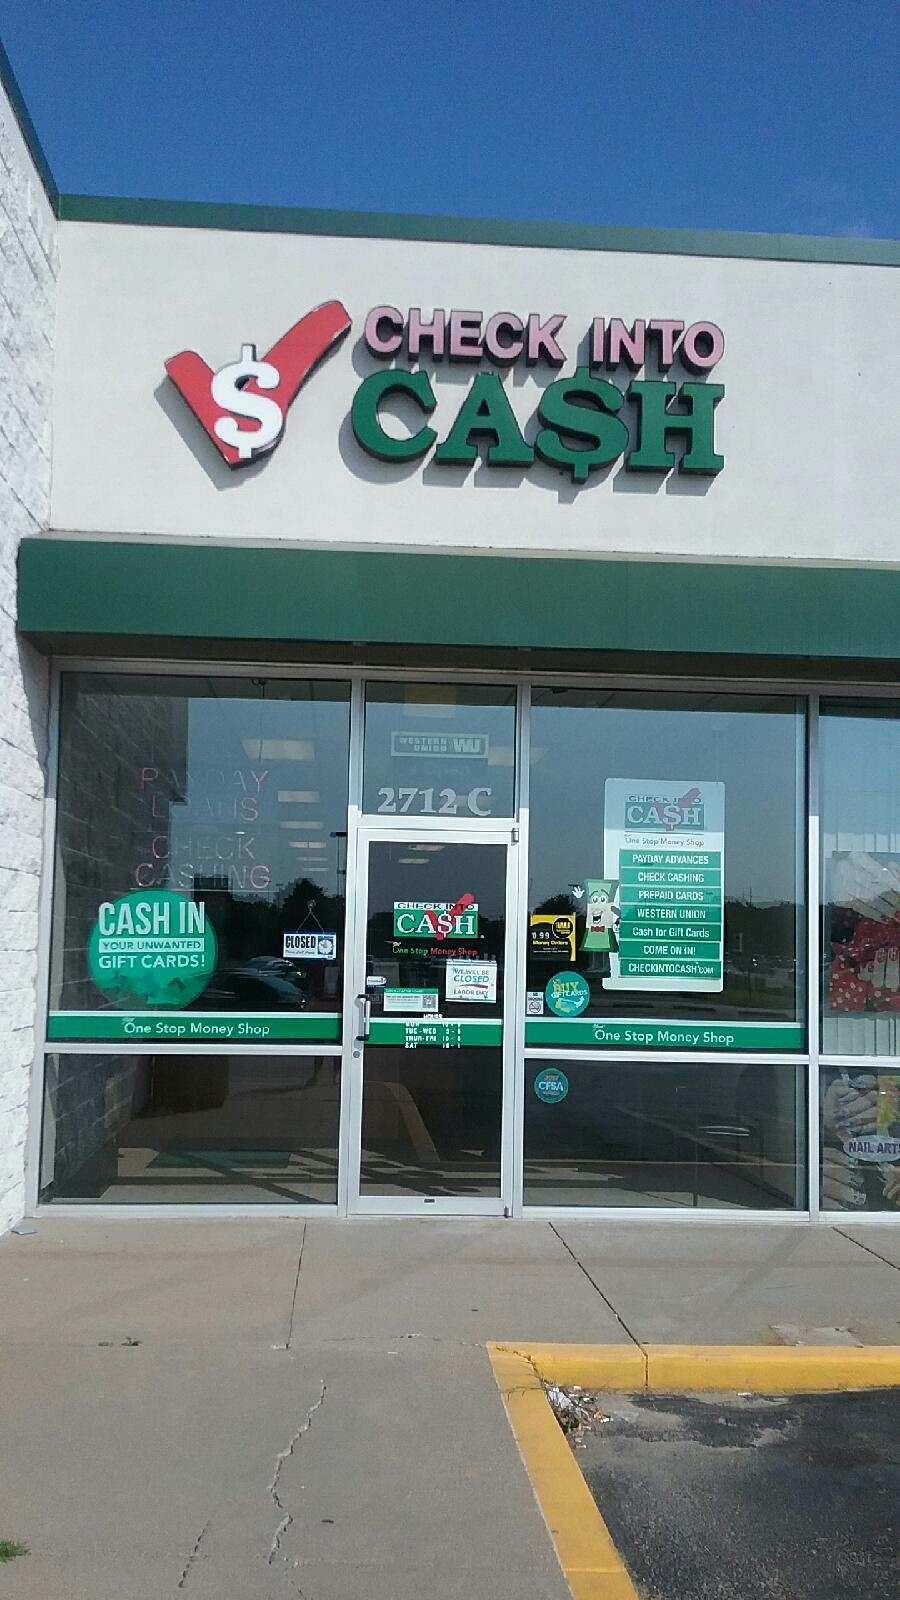 Shops that give payday loans photo 1